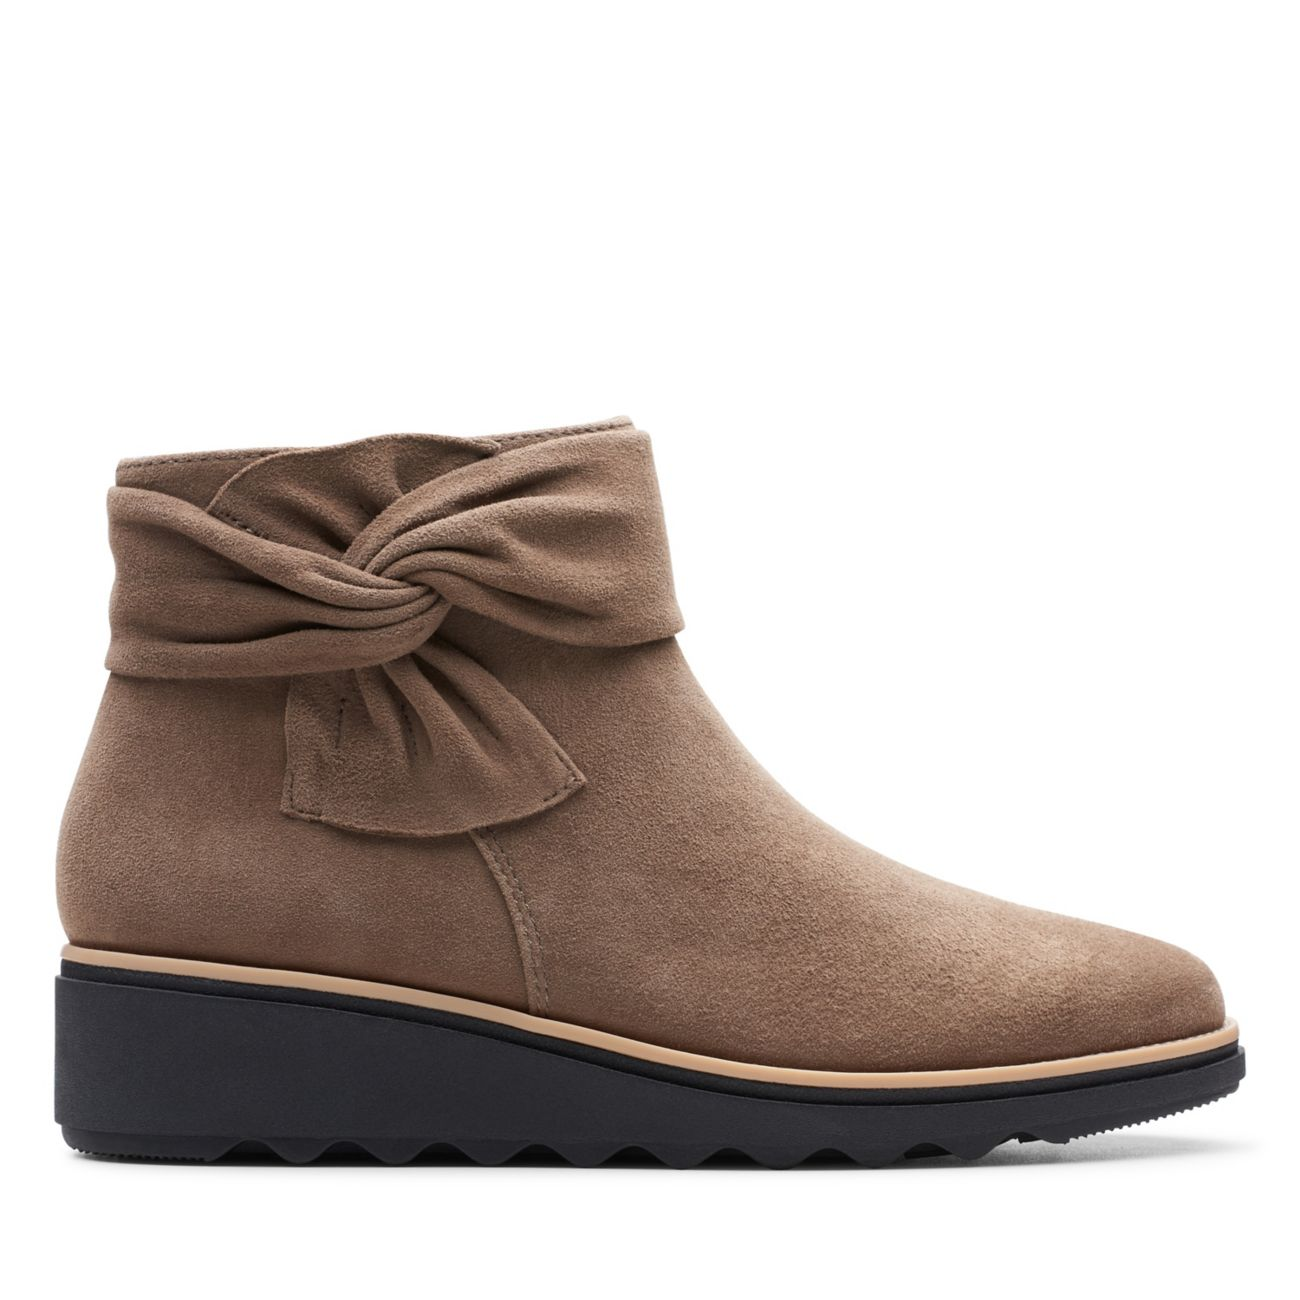 Sharon Salon Olive Suede-Womens Boots- Clarks® Shoes Official Site     Clarks